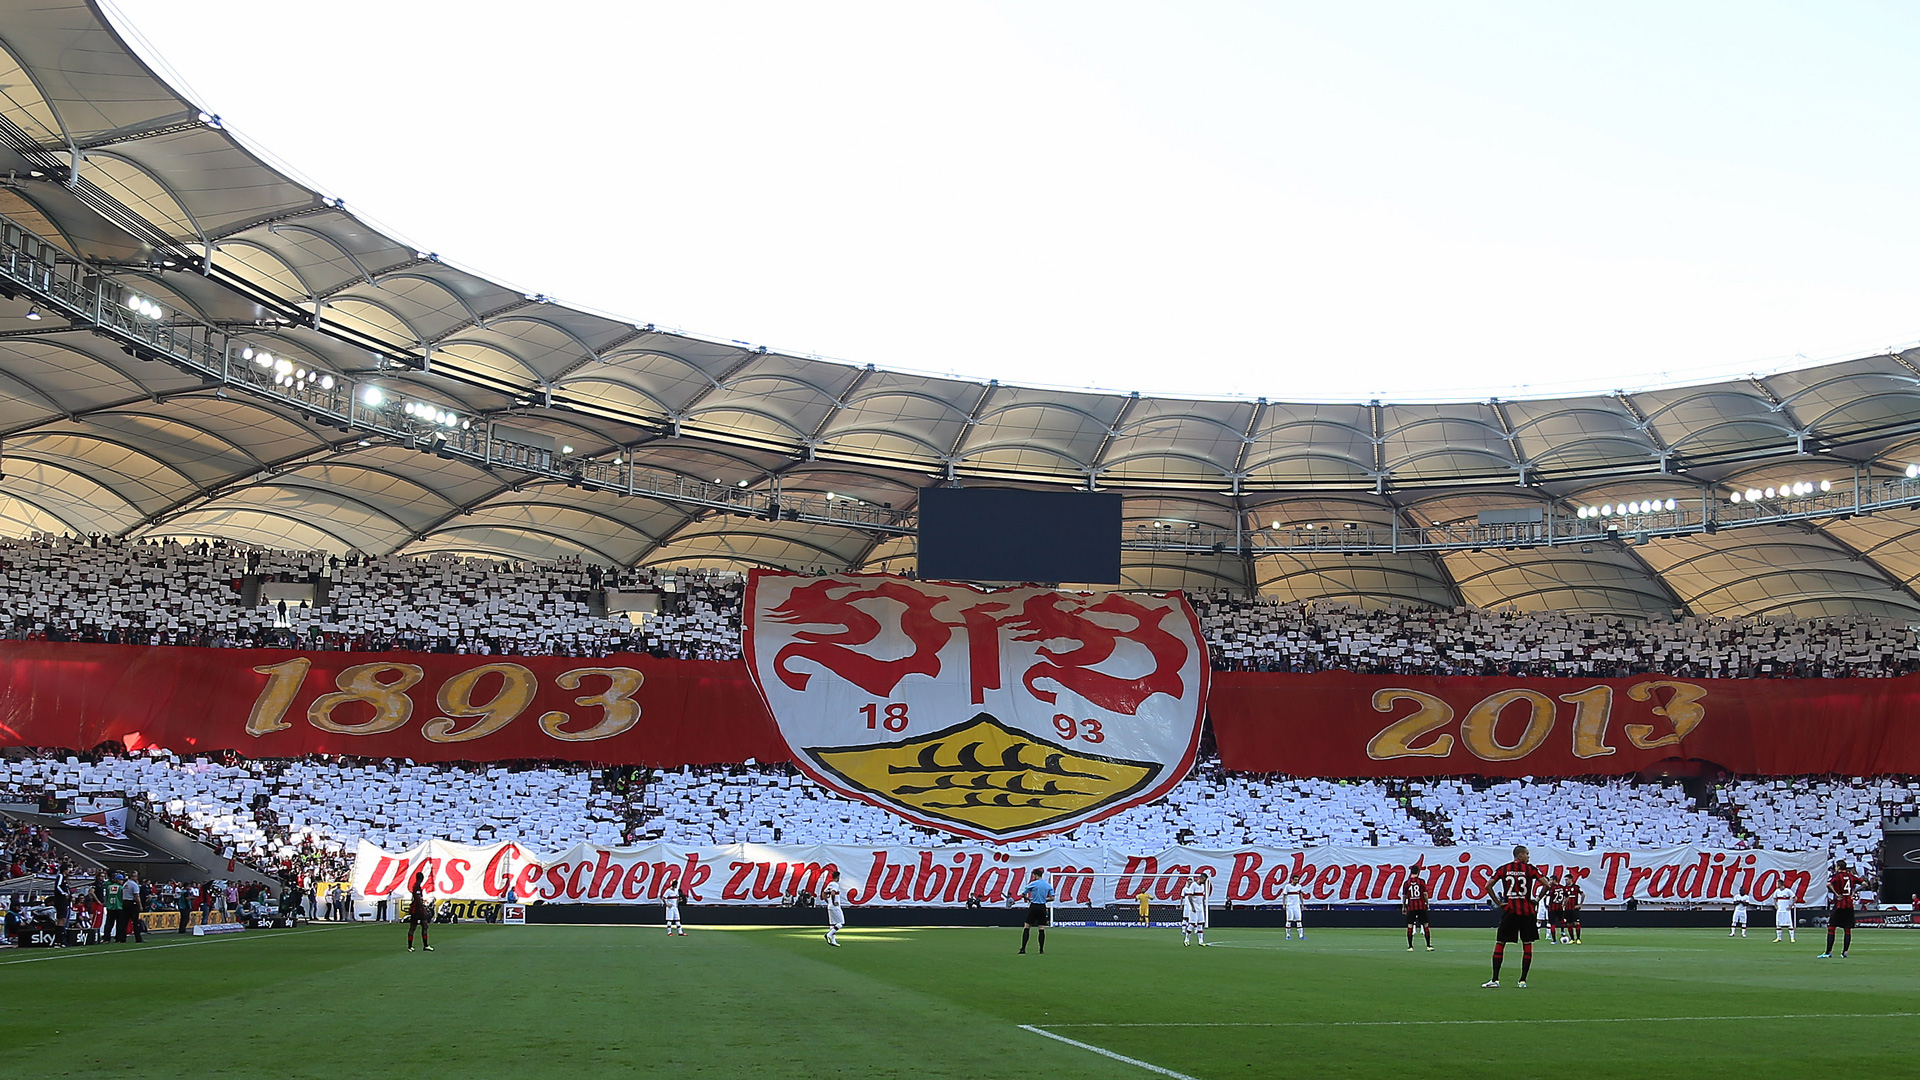 VfB Stuttgart  Dusseldorf BETTING TIPS (06022017)